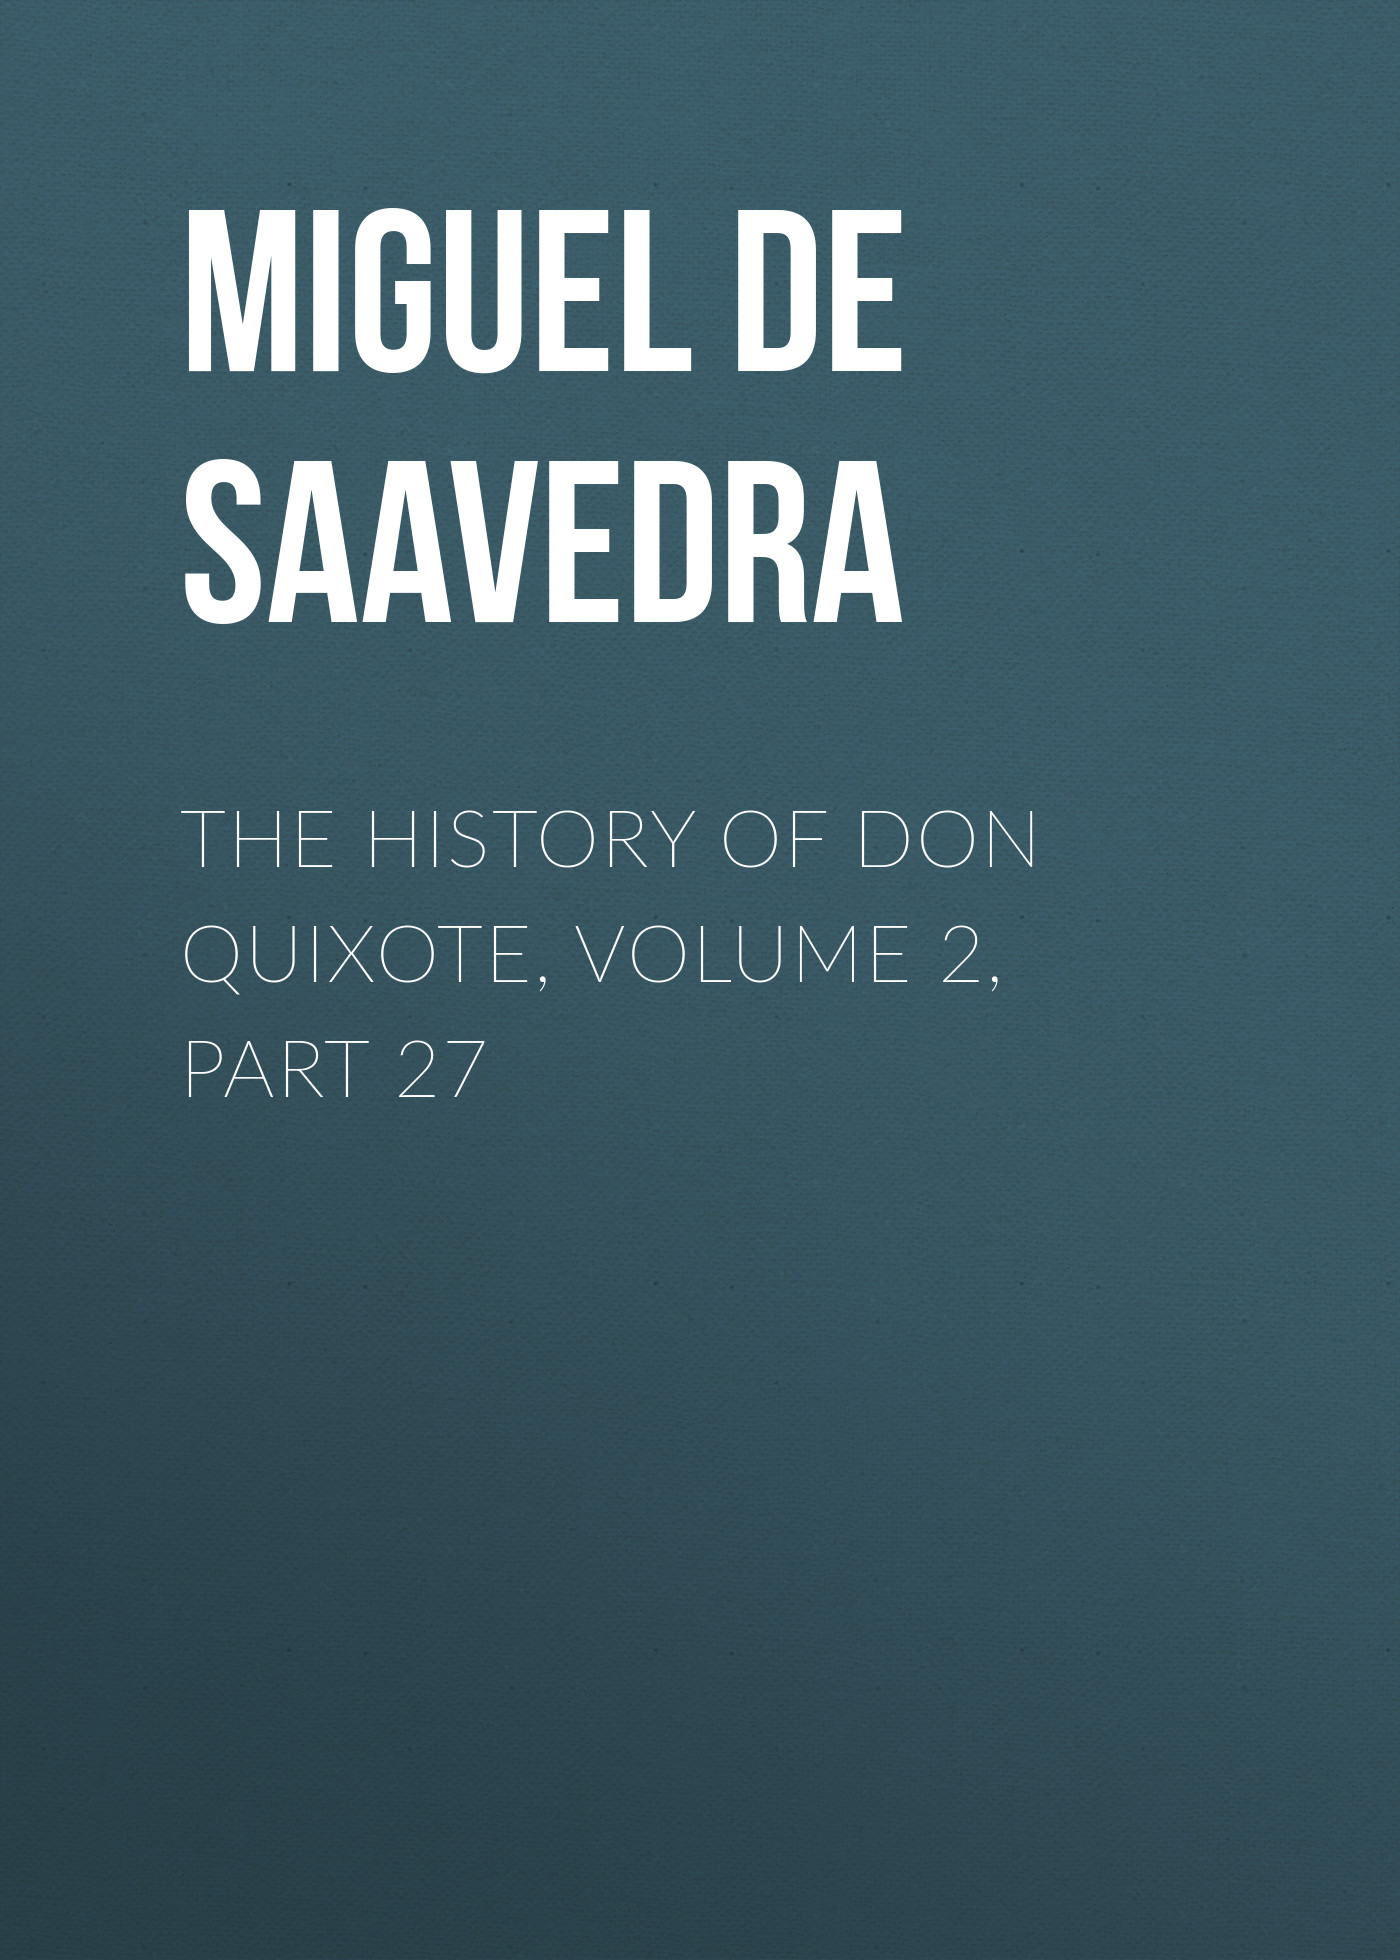 the history of don quixote volume 2 part 27